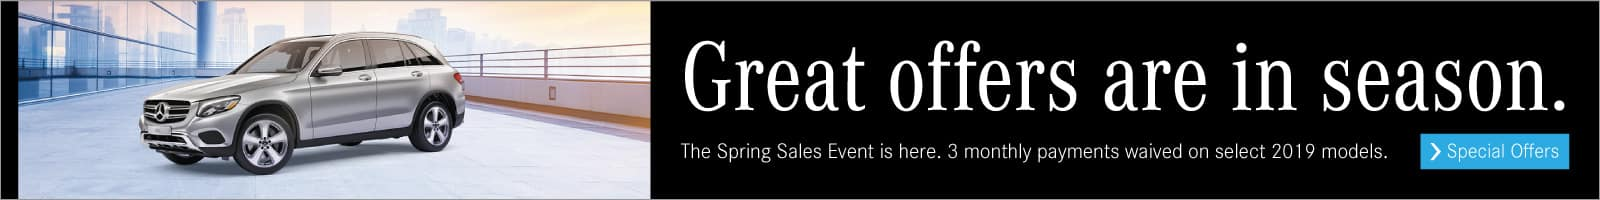 The Spring Sales Event